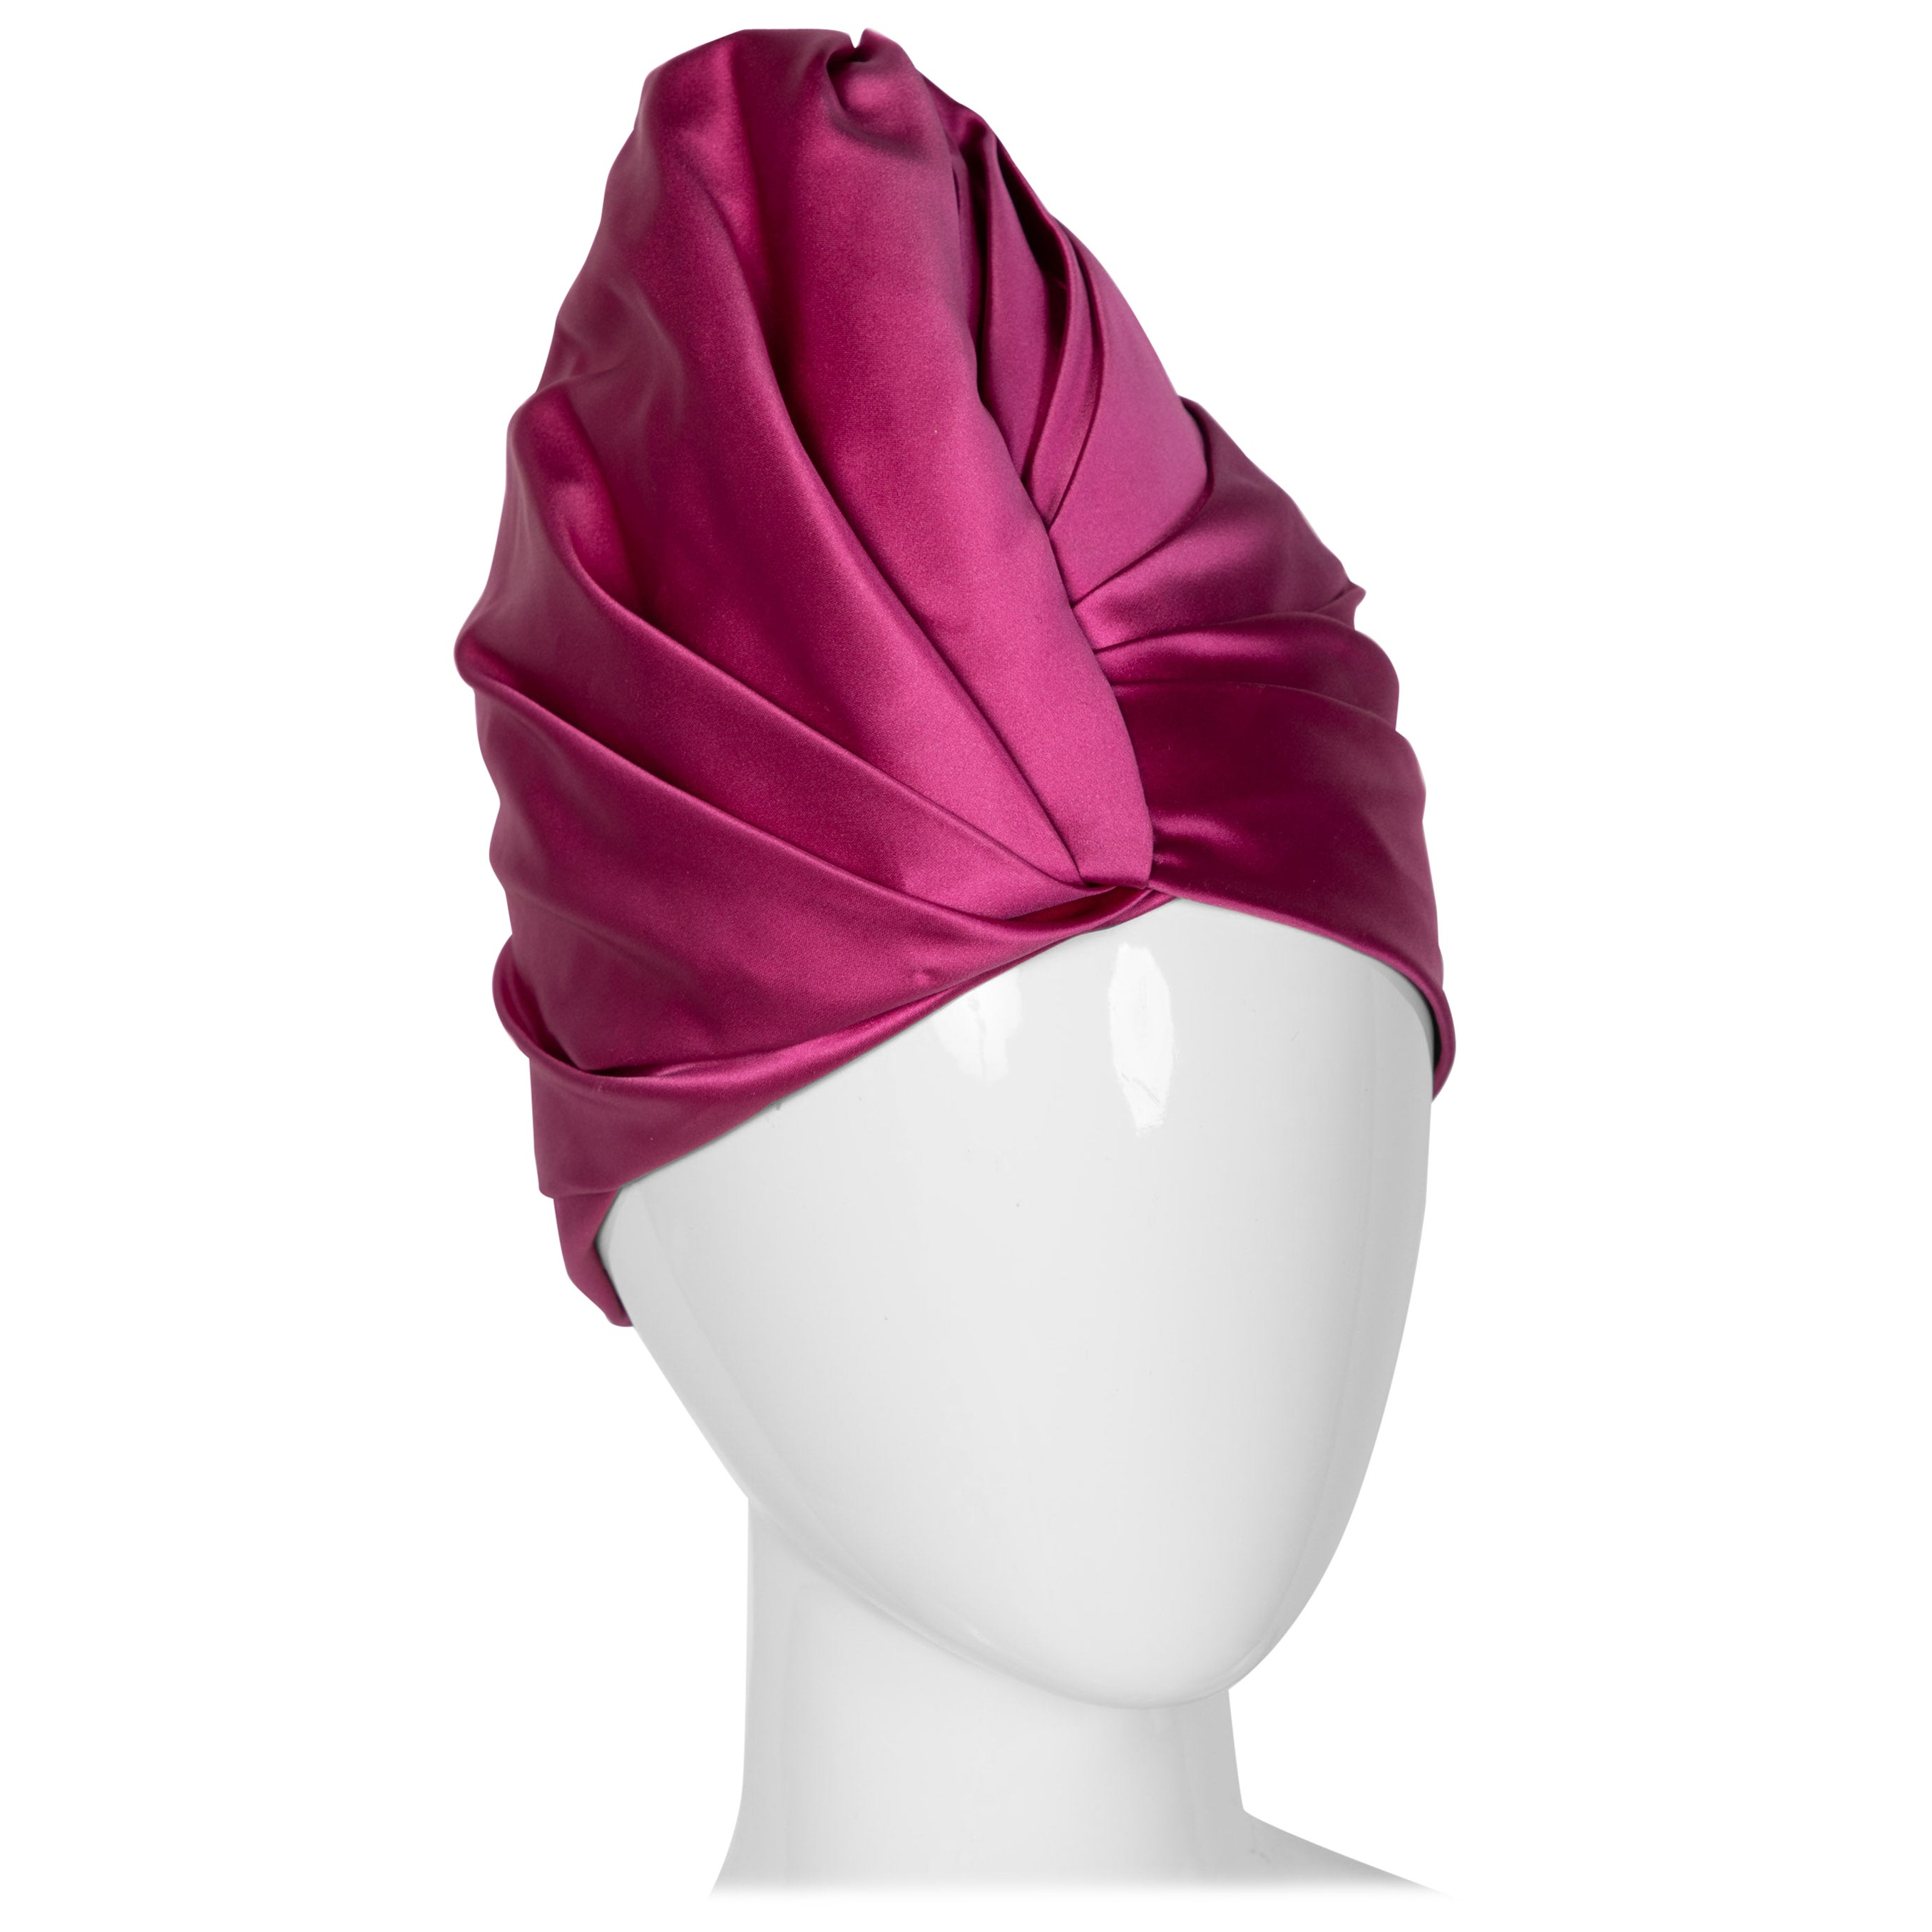 Prada Pink Silk Satin Turban Hat Runway, 2007